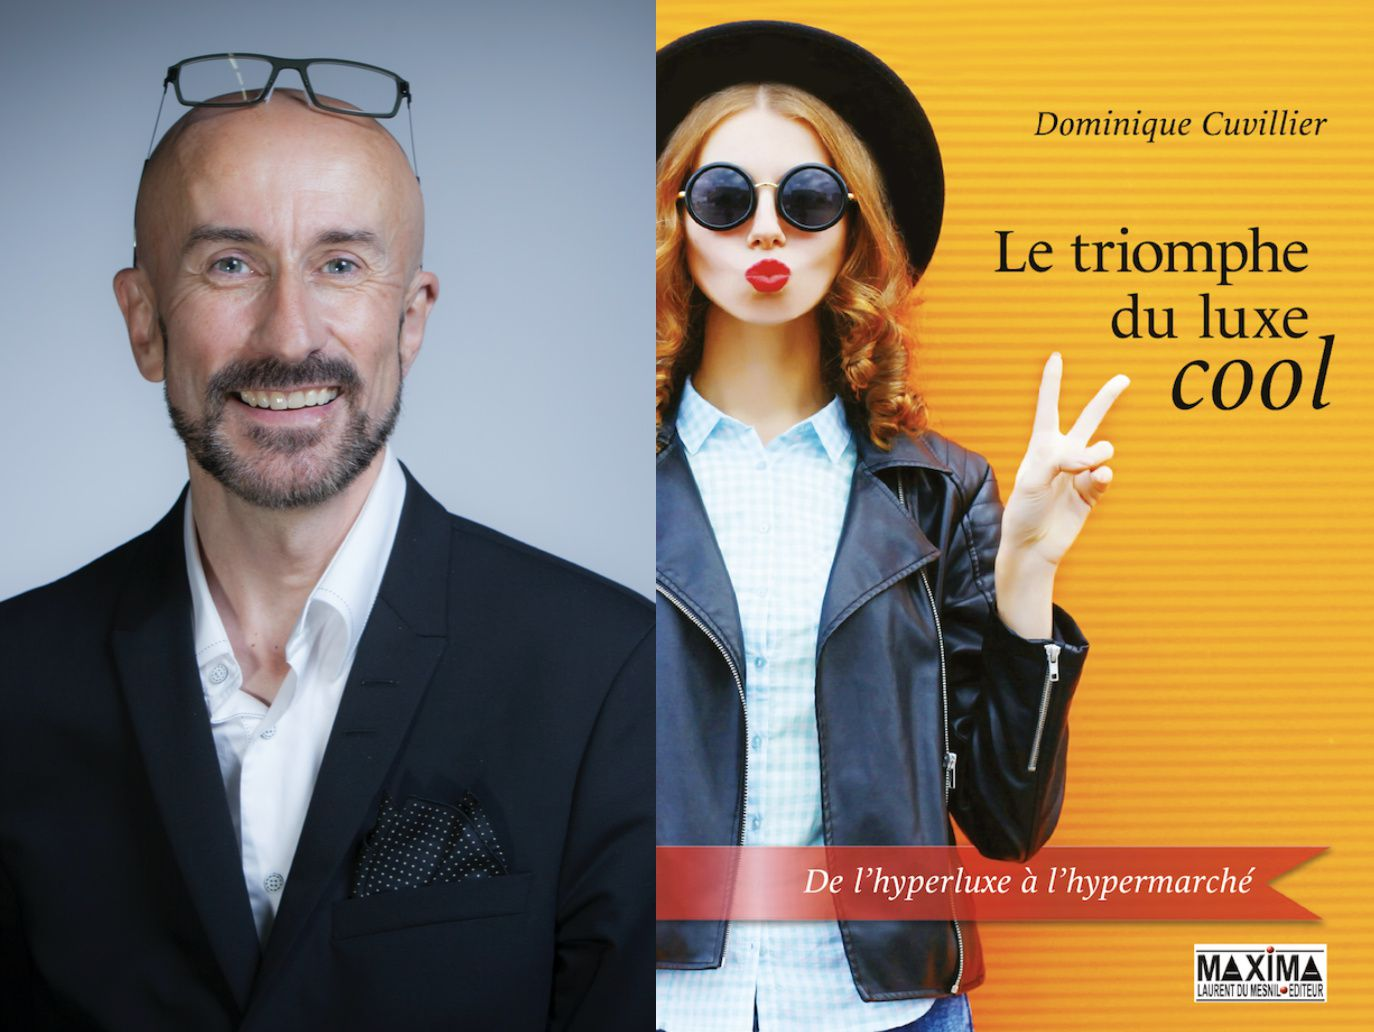 Le triomphe du luxe cool : interview